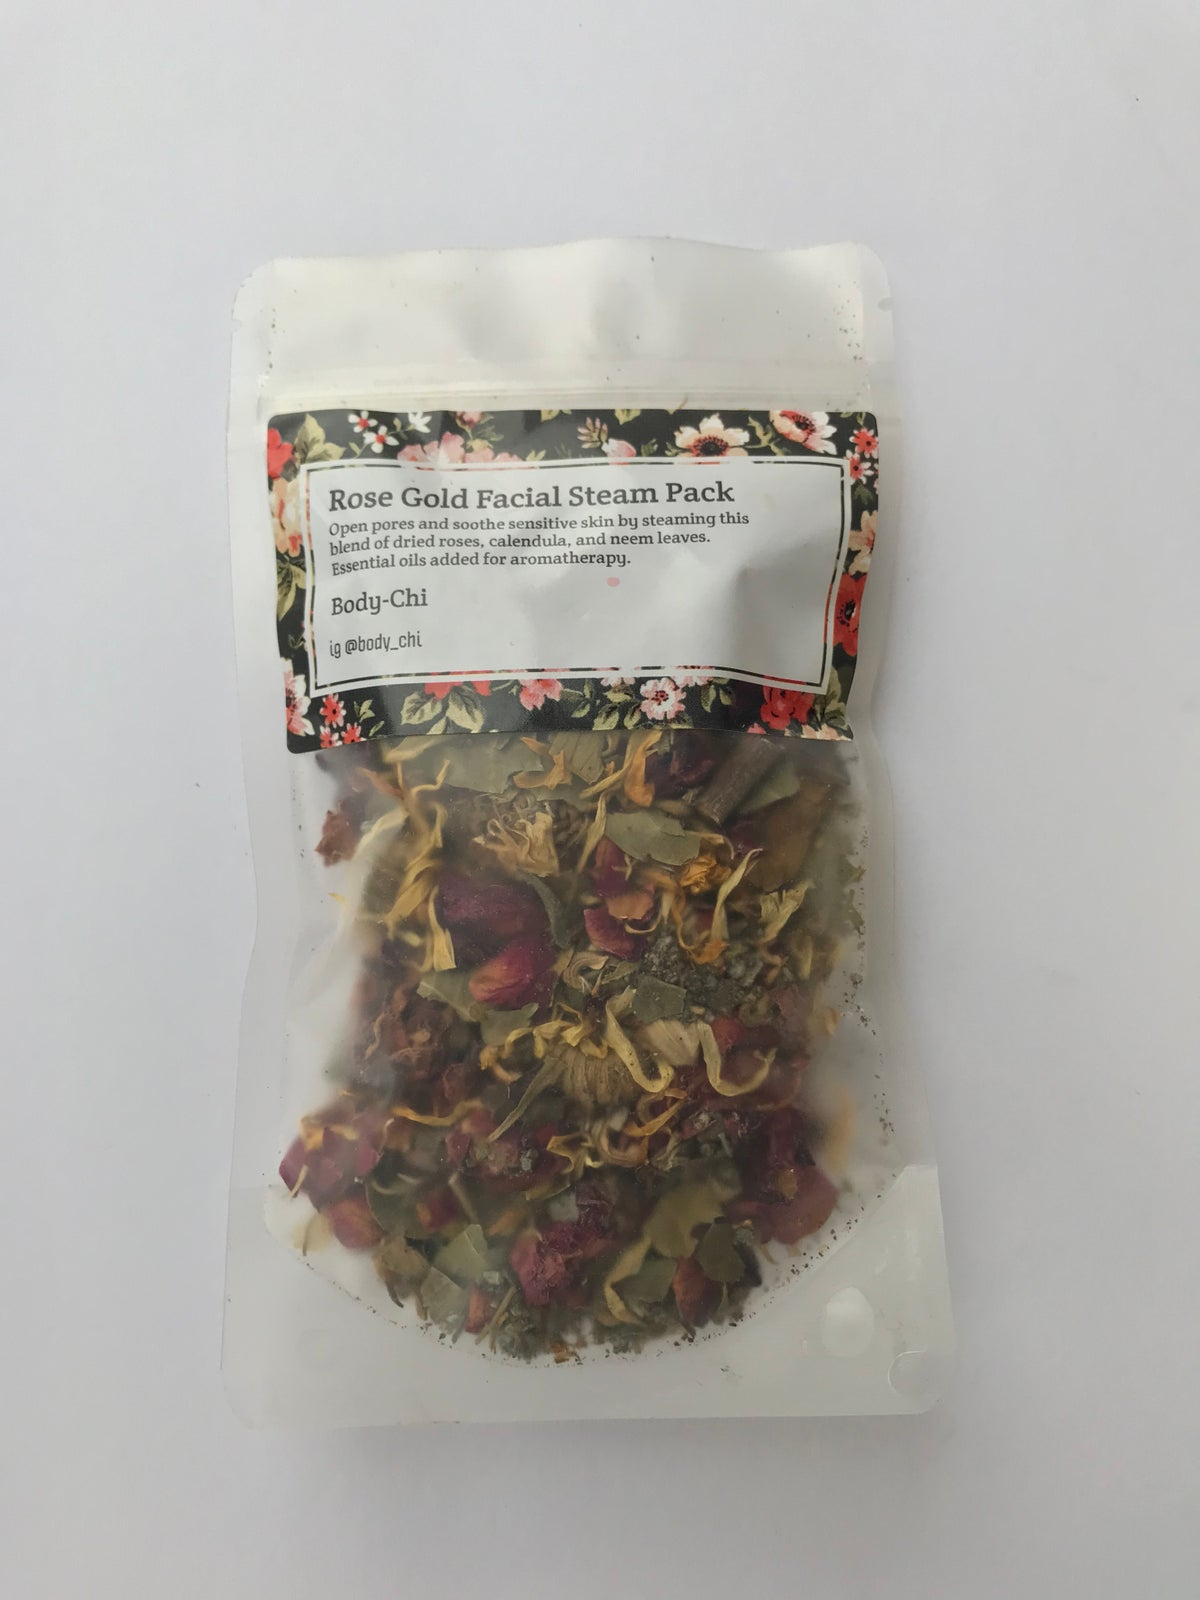 Image of Rose Gold Facial Steam Pack